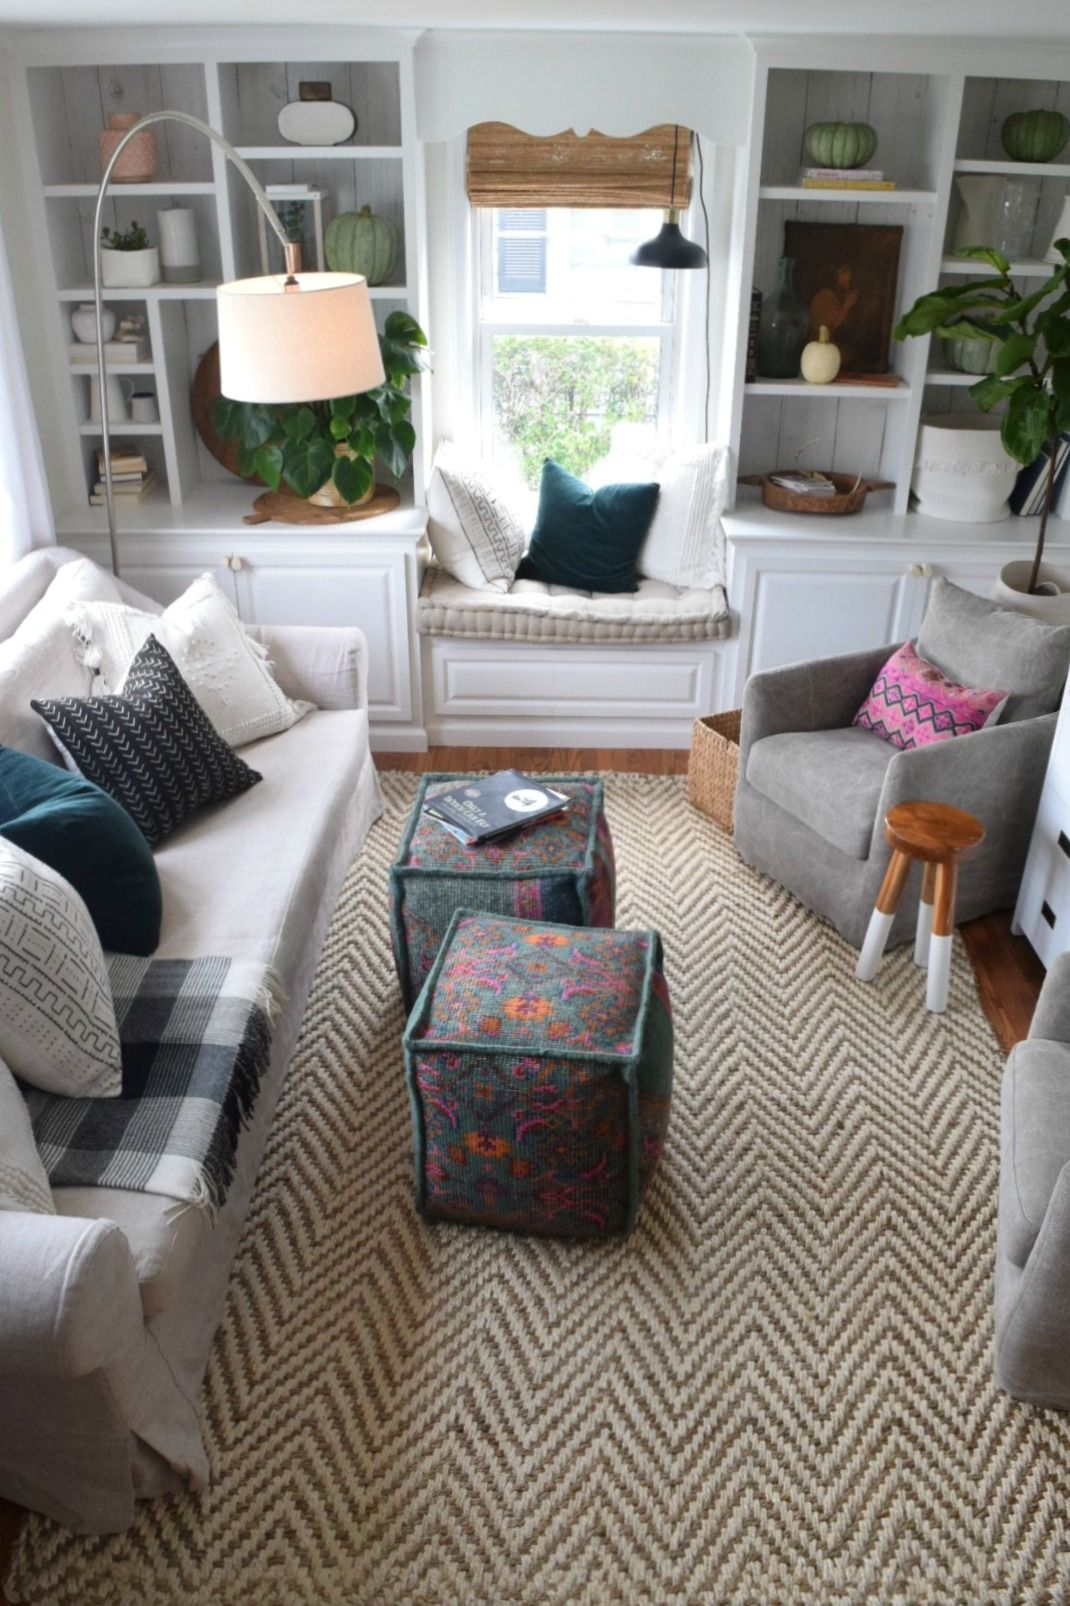 Tis Autumn Living Room Fall Decor Ideas: Fall Decor In Our Family Room- Seasons Of Home Series